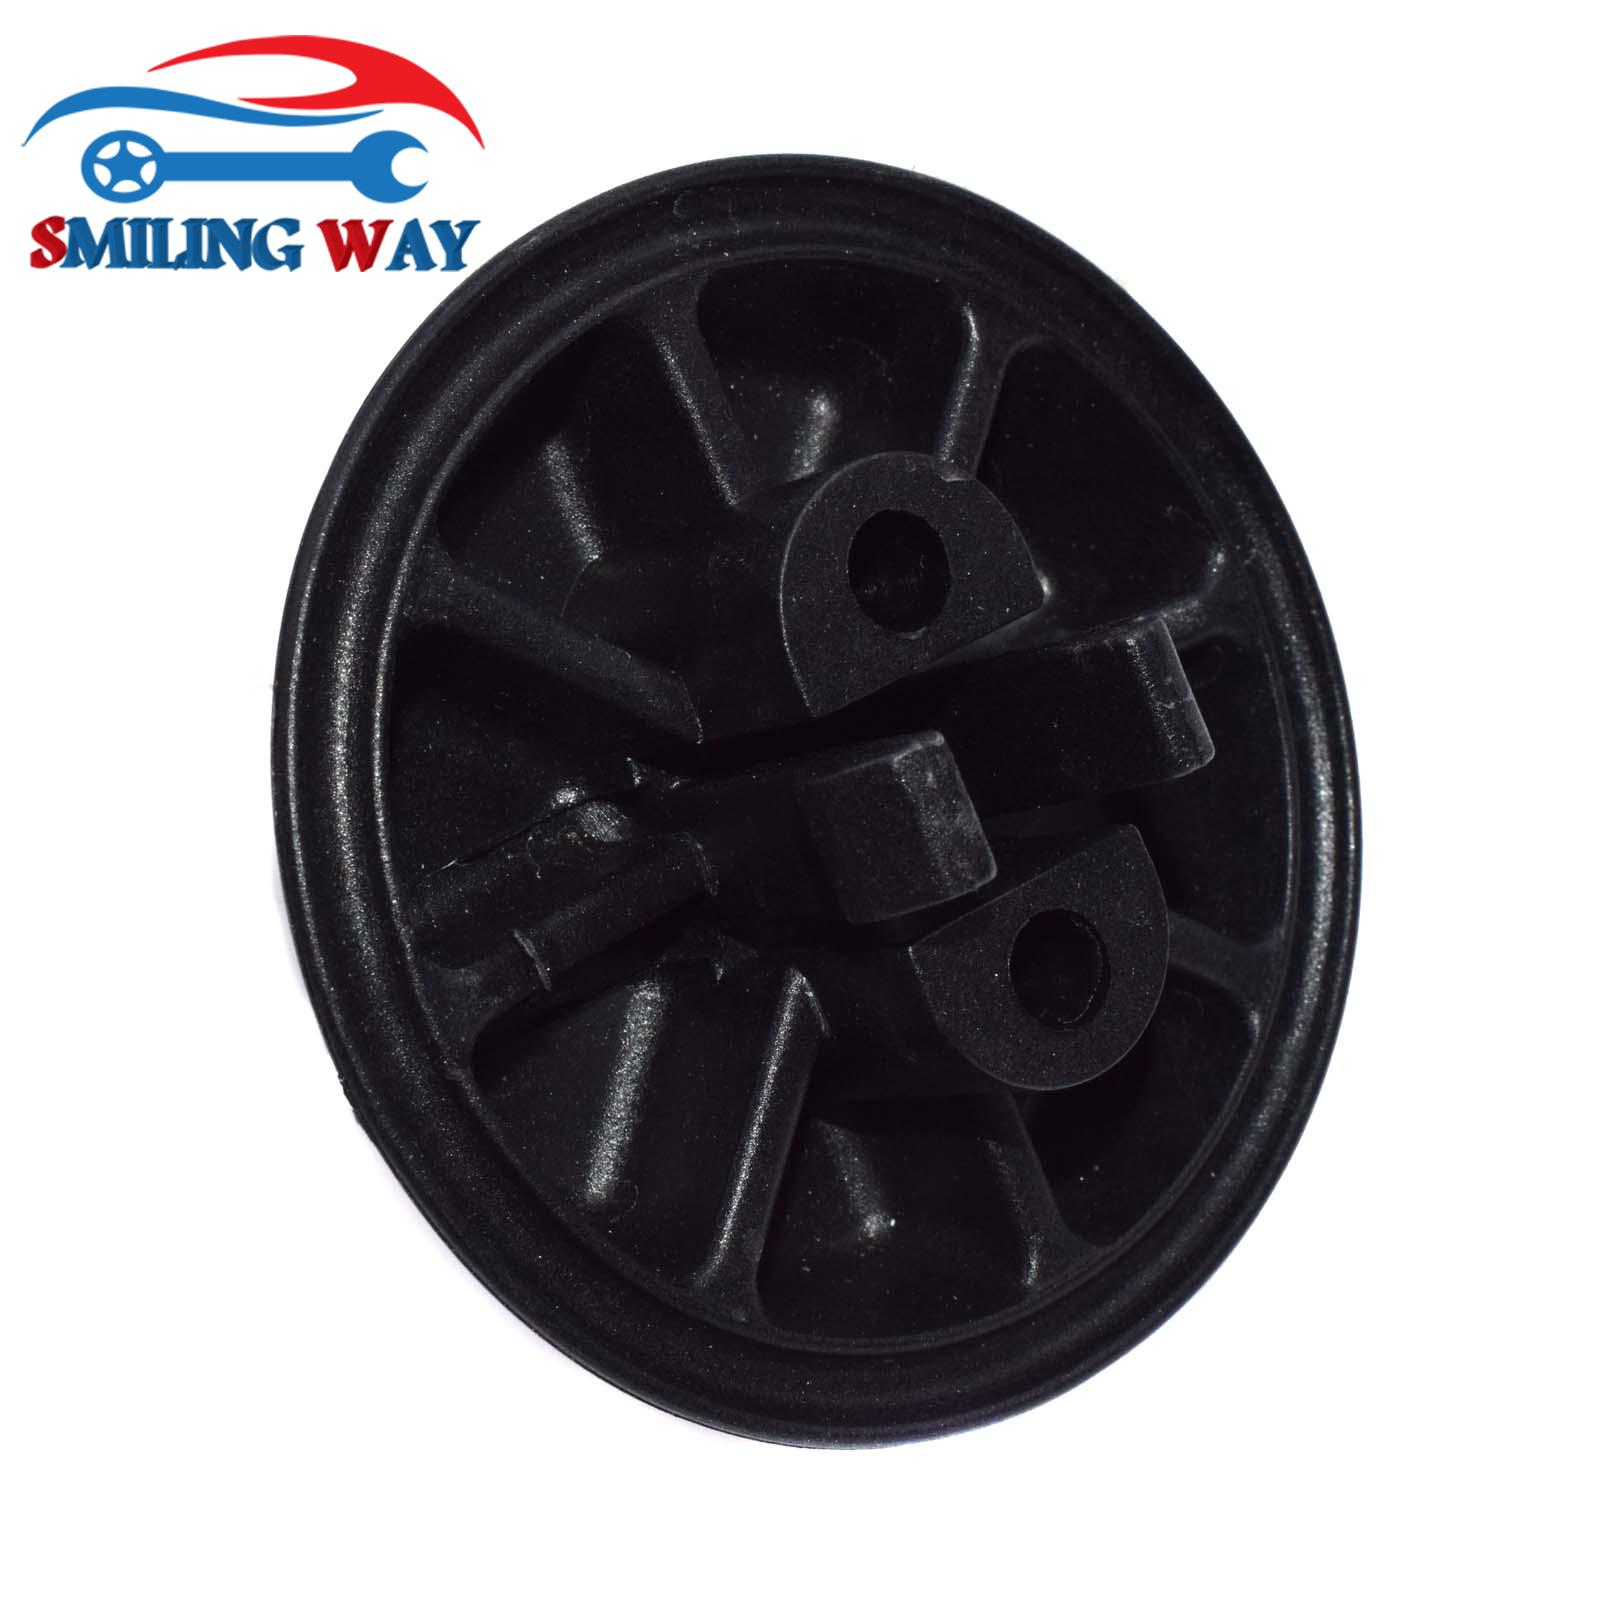 1x Jack Recording Plug Cushion for BMW Series 3 E36 Coupe New